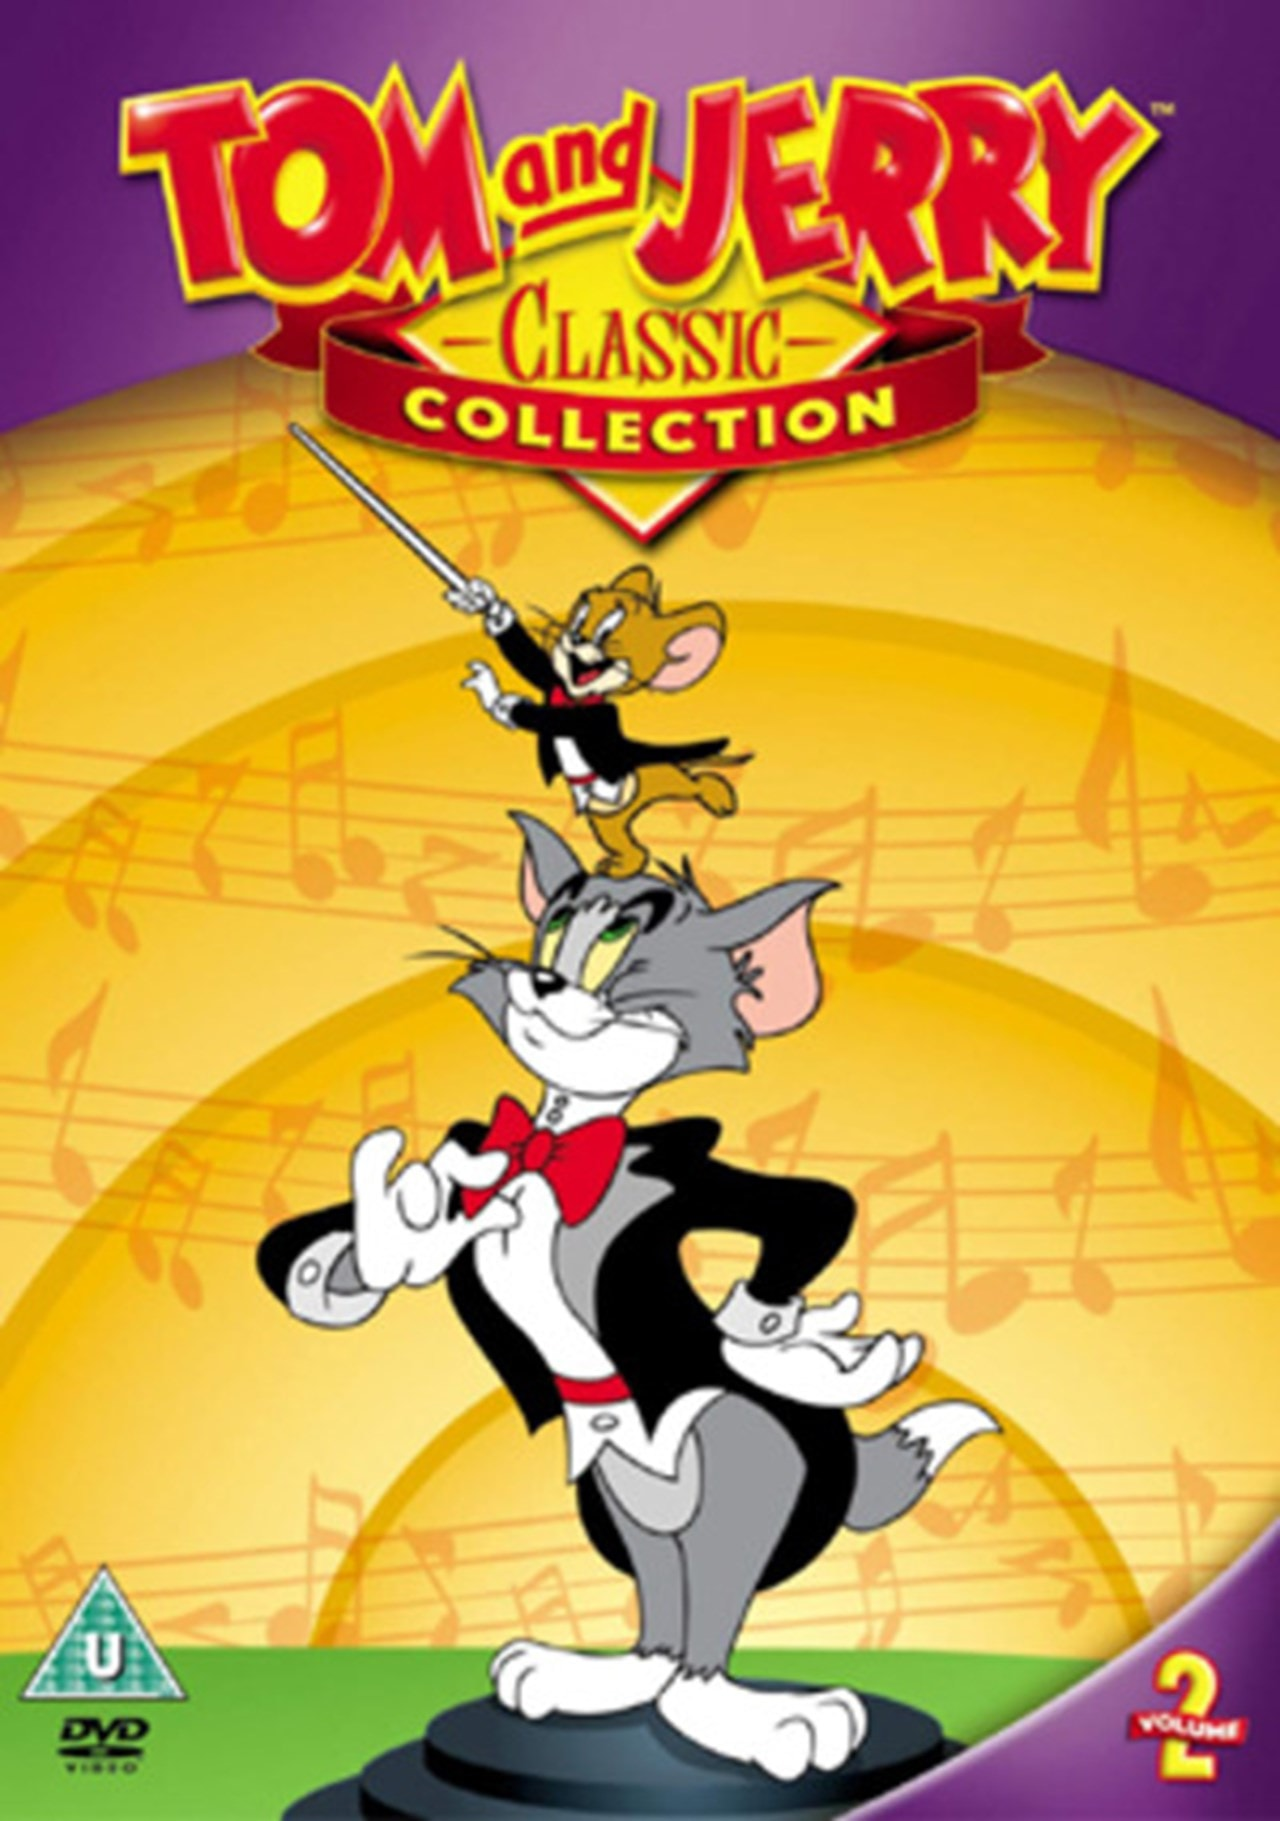 Tom and Jerry: Classic Collection - Volume 2 - 1